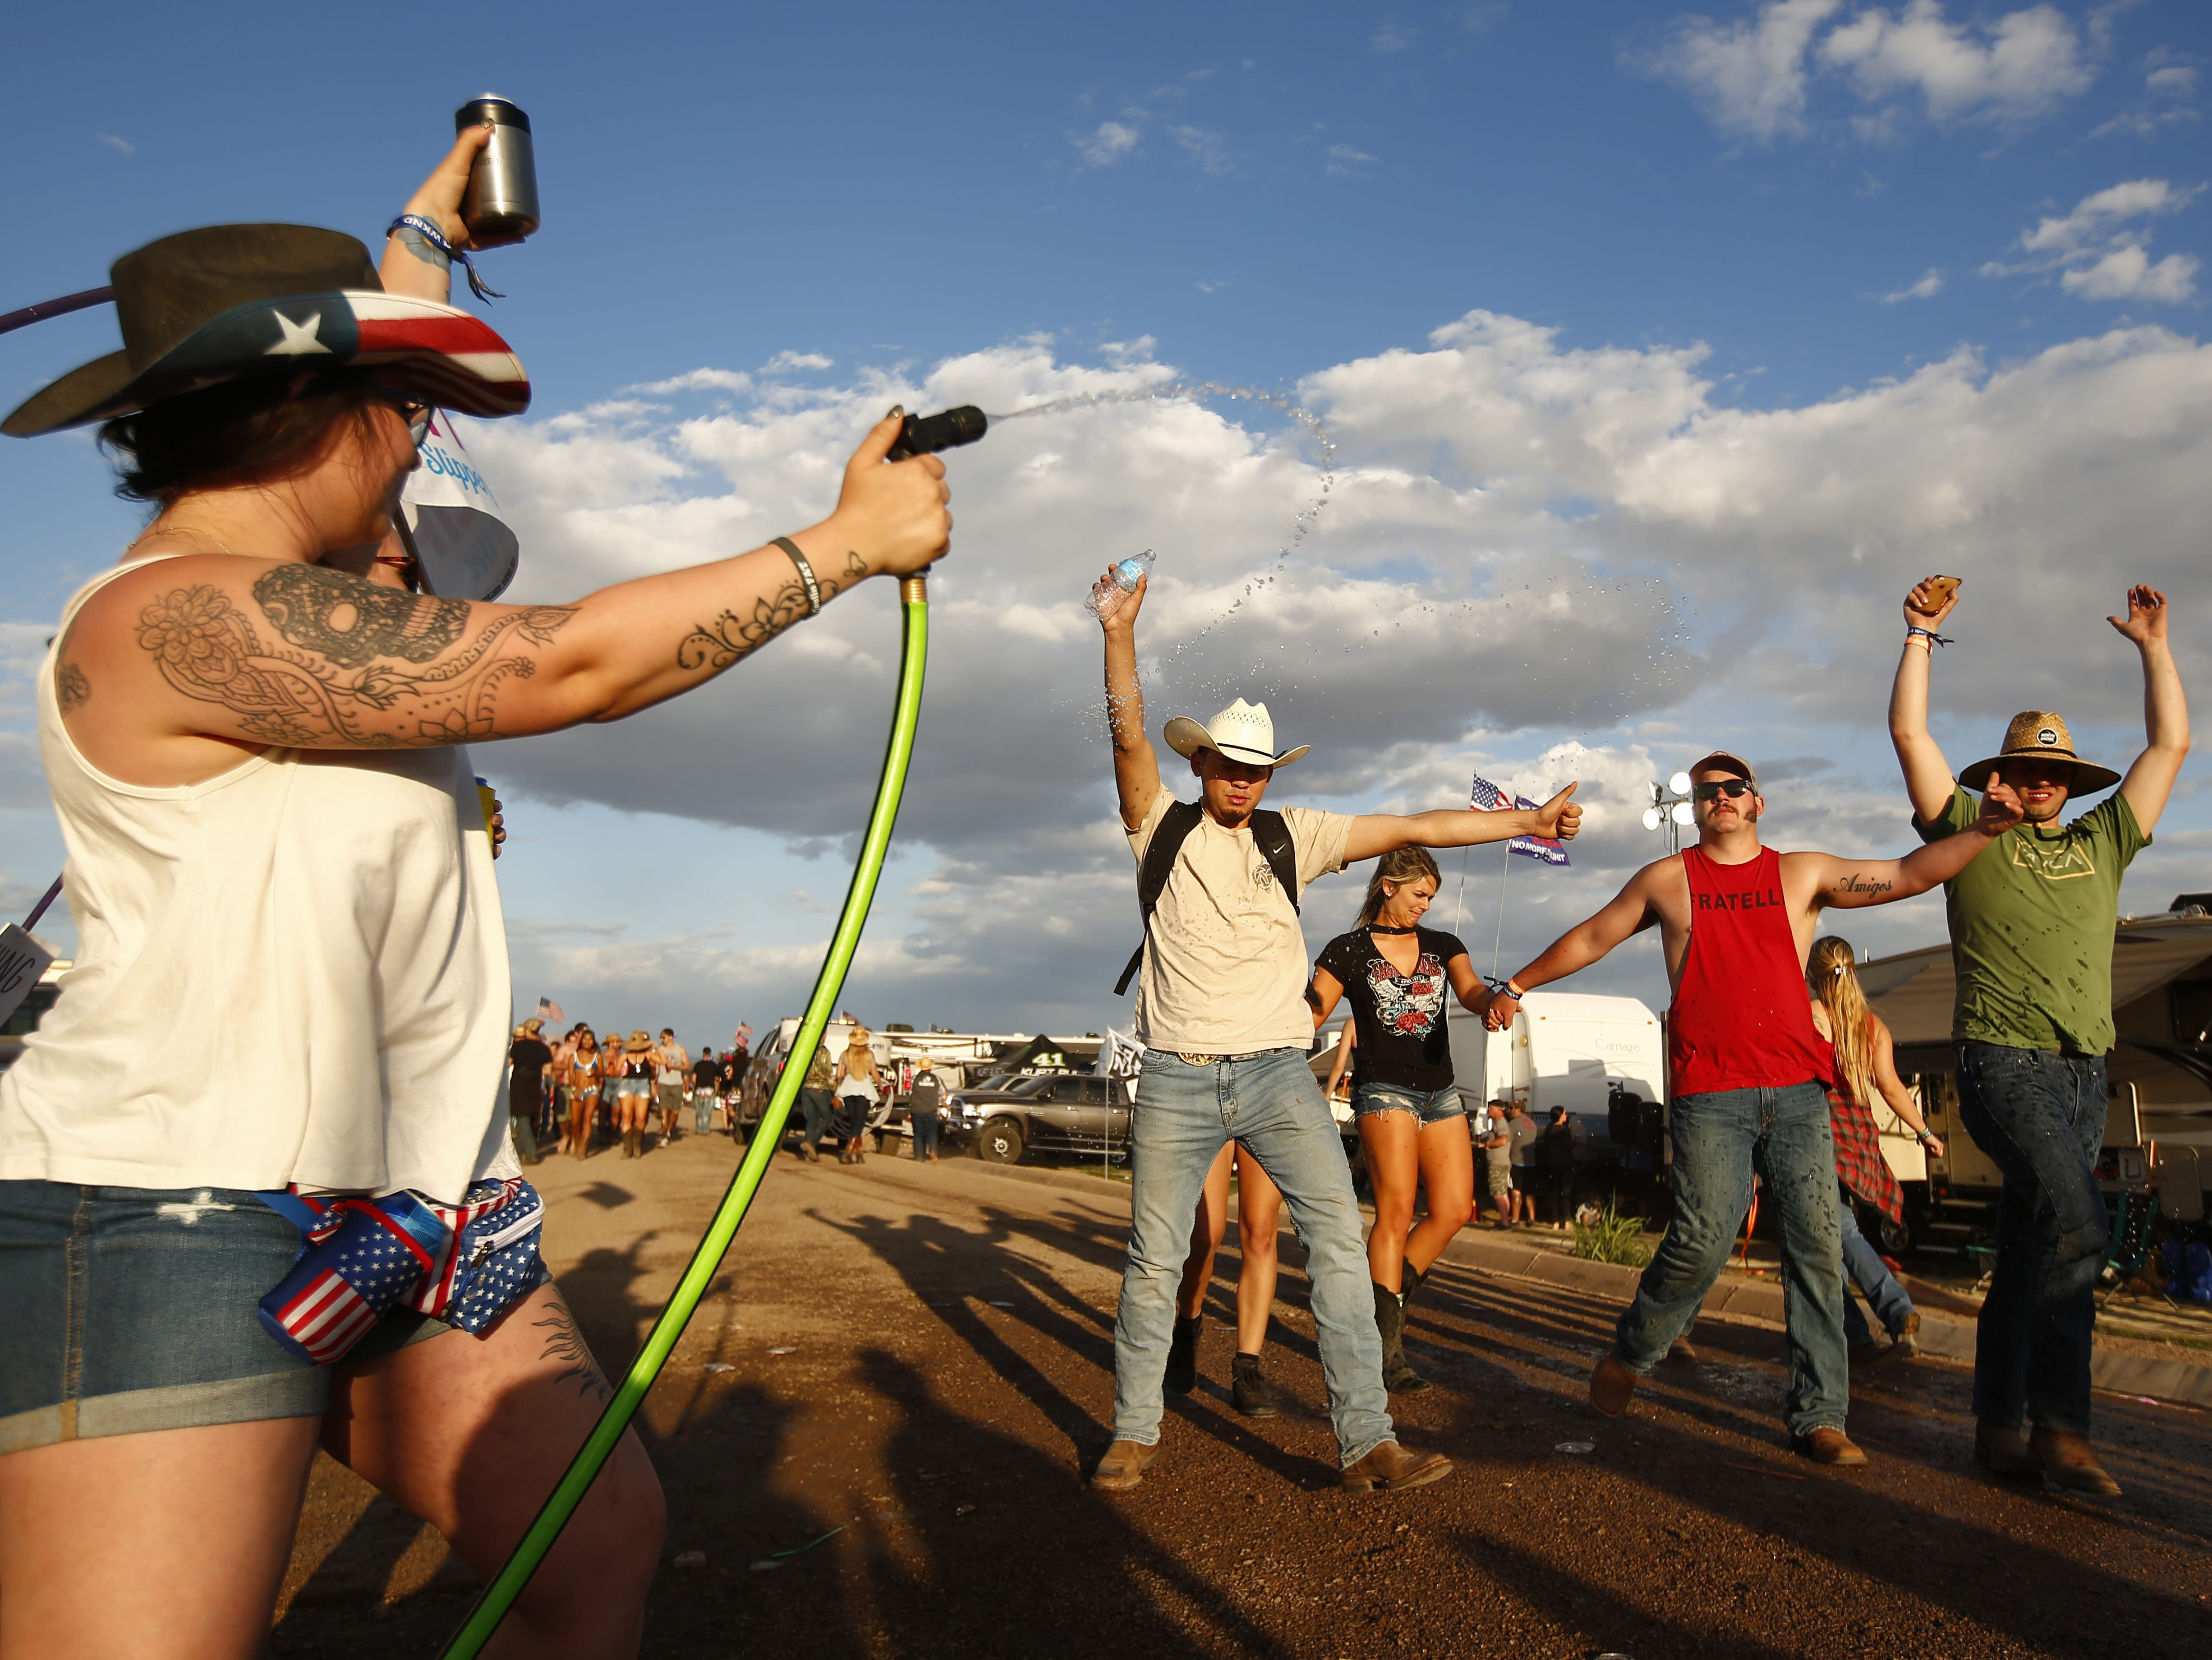 Country music fans are sprayed with water at the campsites during Country Thunder in Florence, Ariz. on Friday, April 12, 2019.